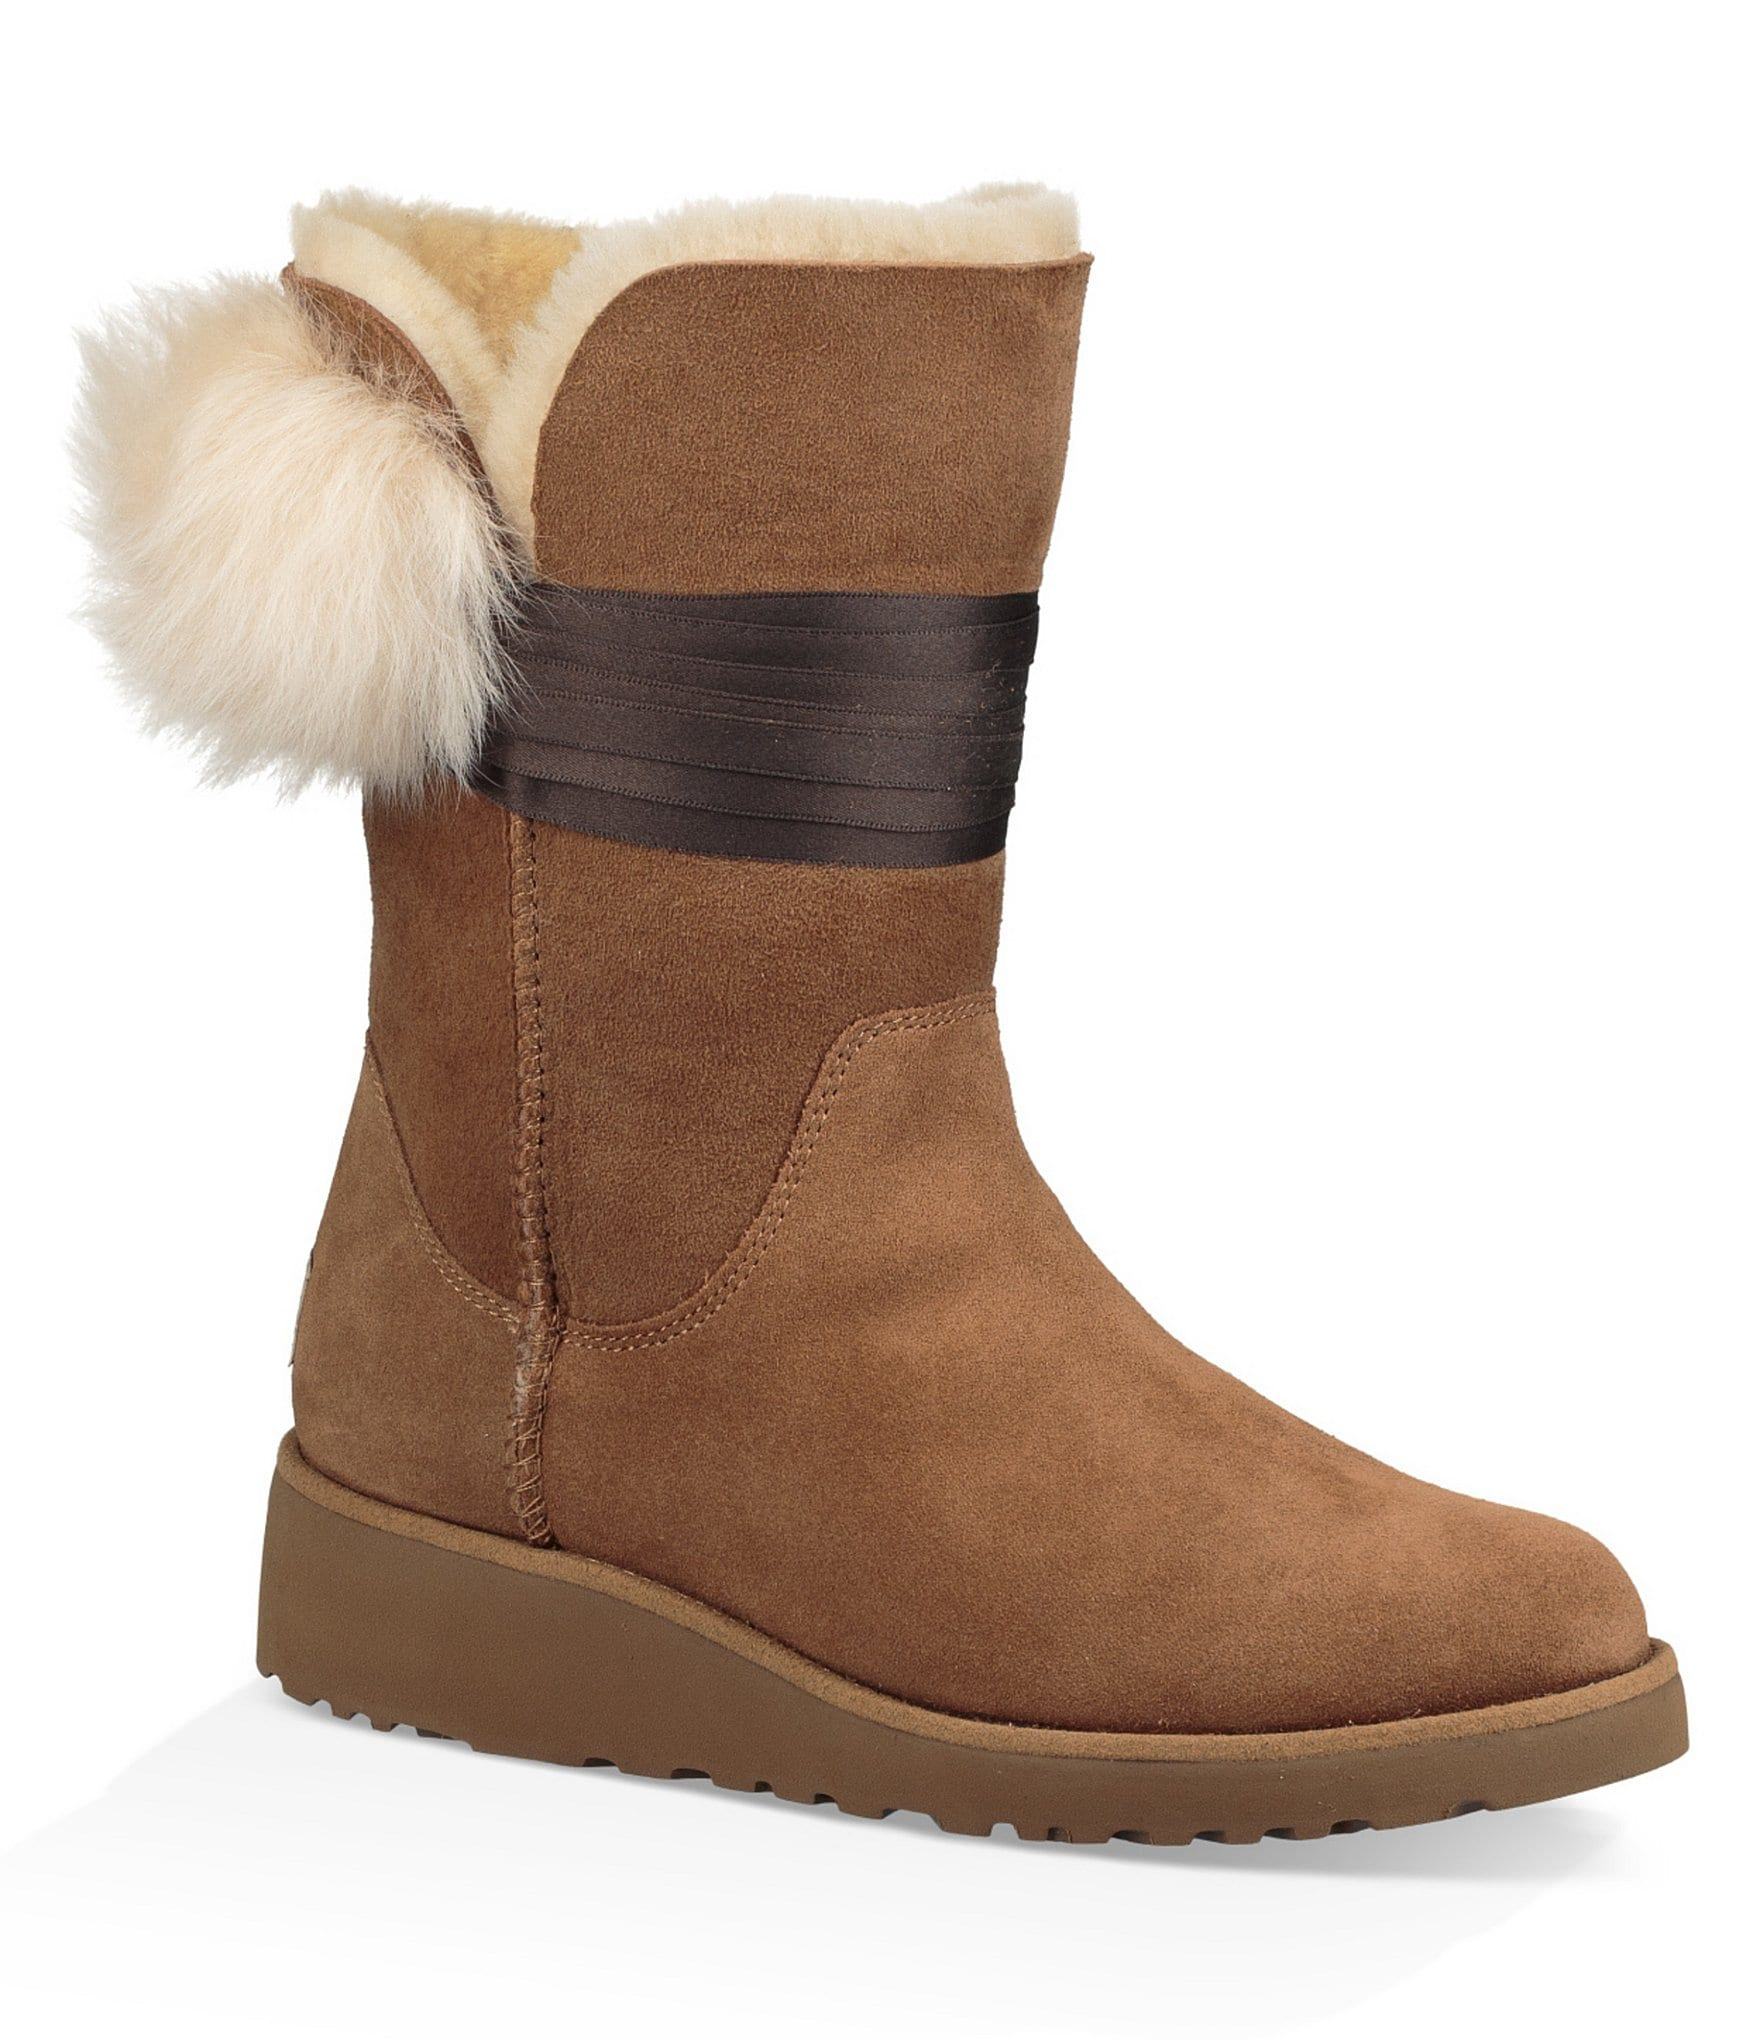 dillards ugg boots clearance boots price reviews 2017